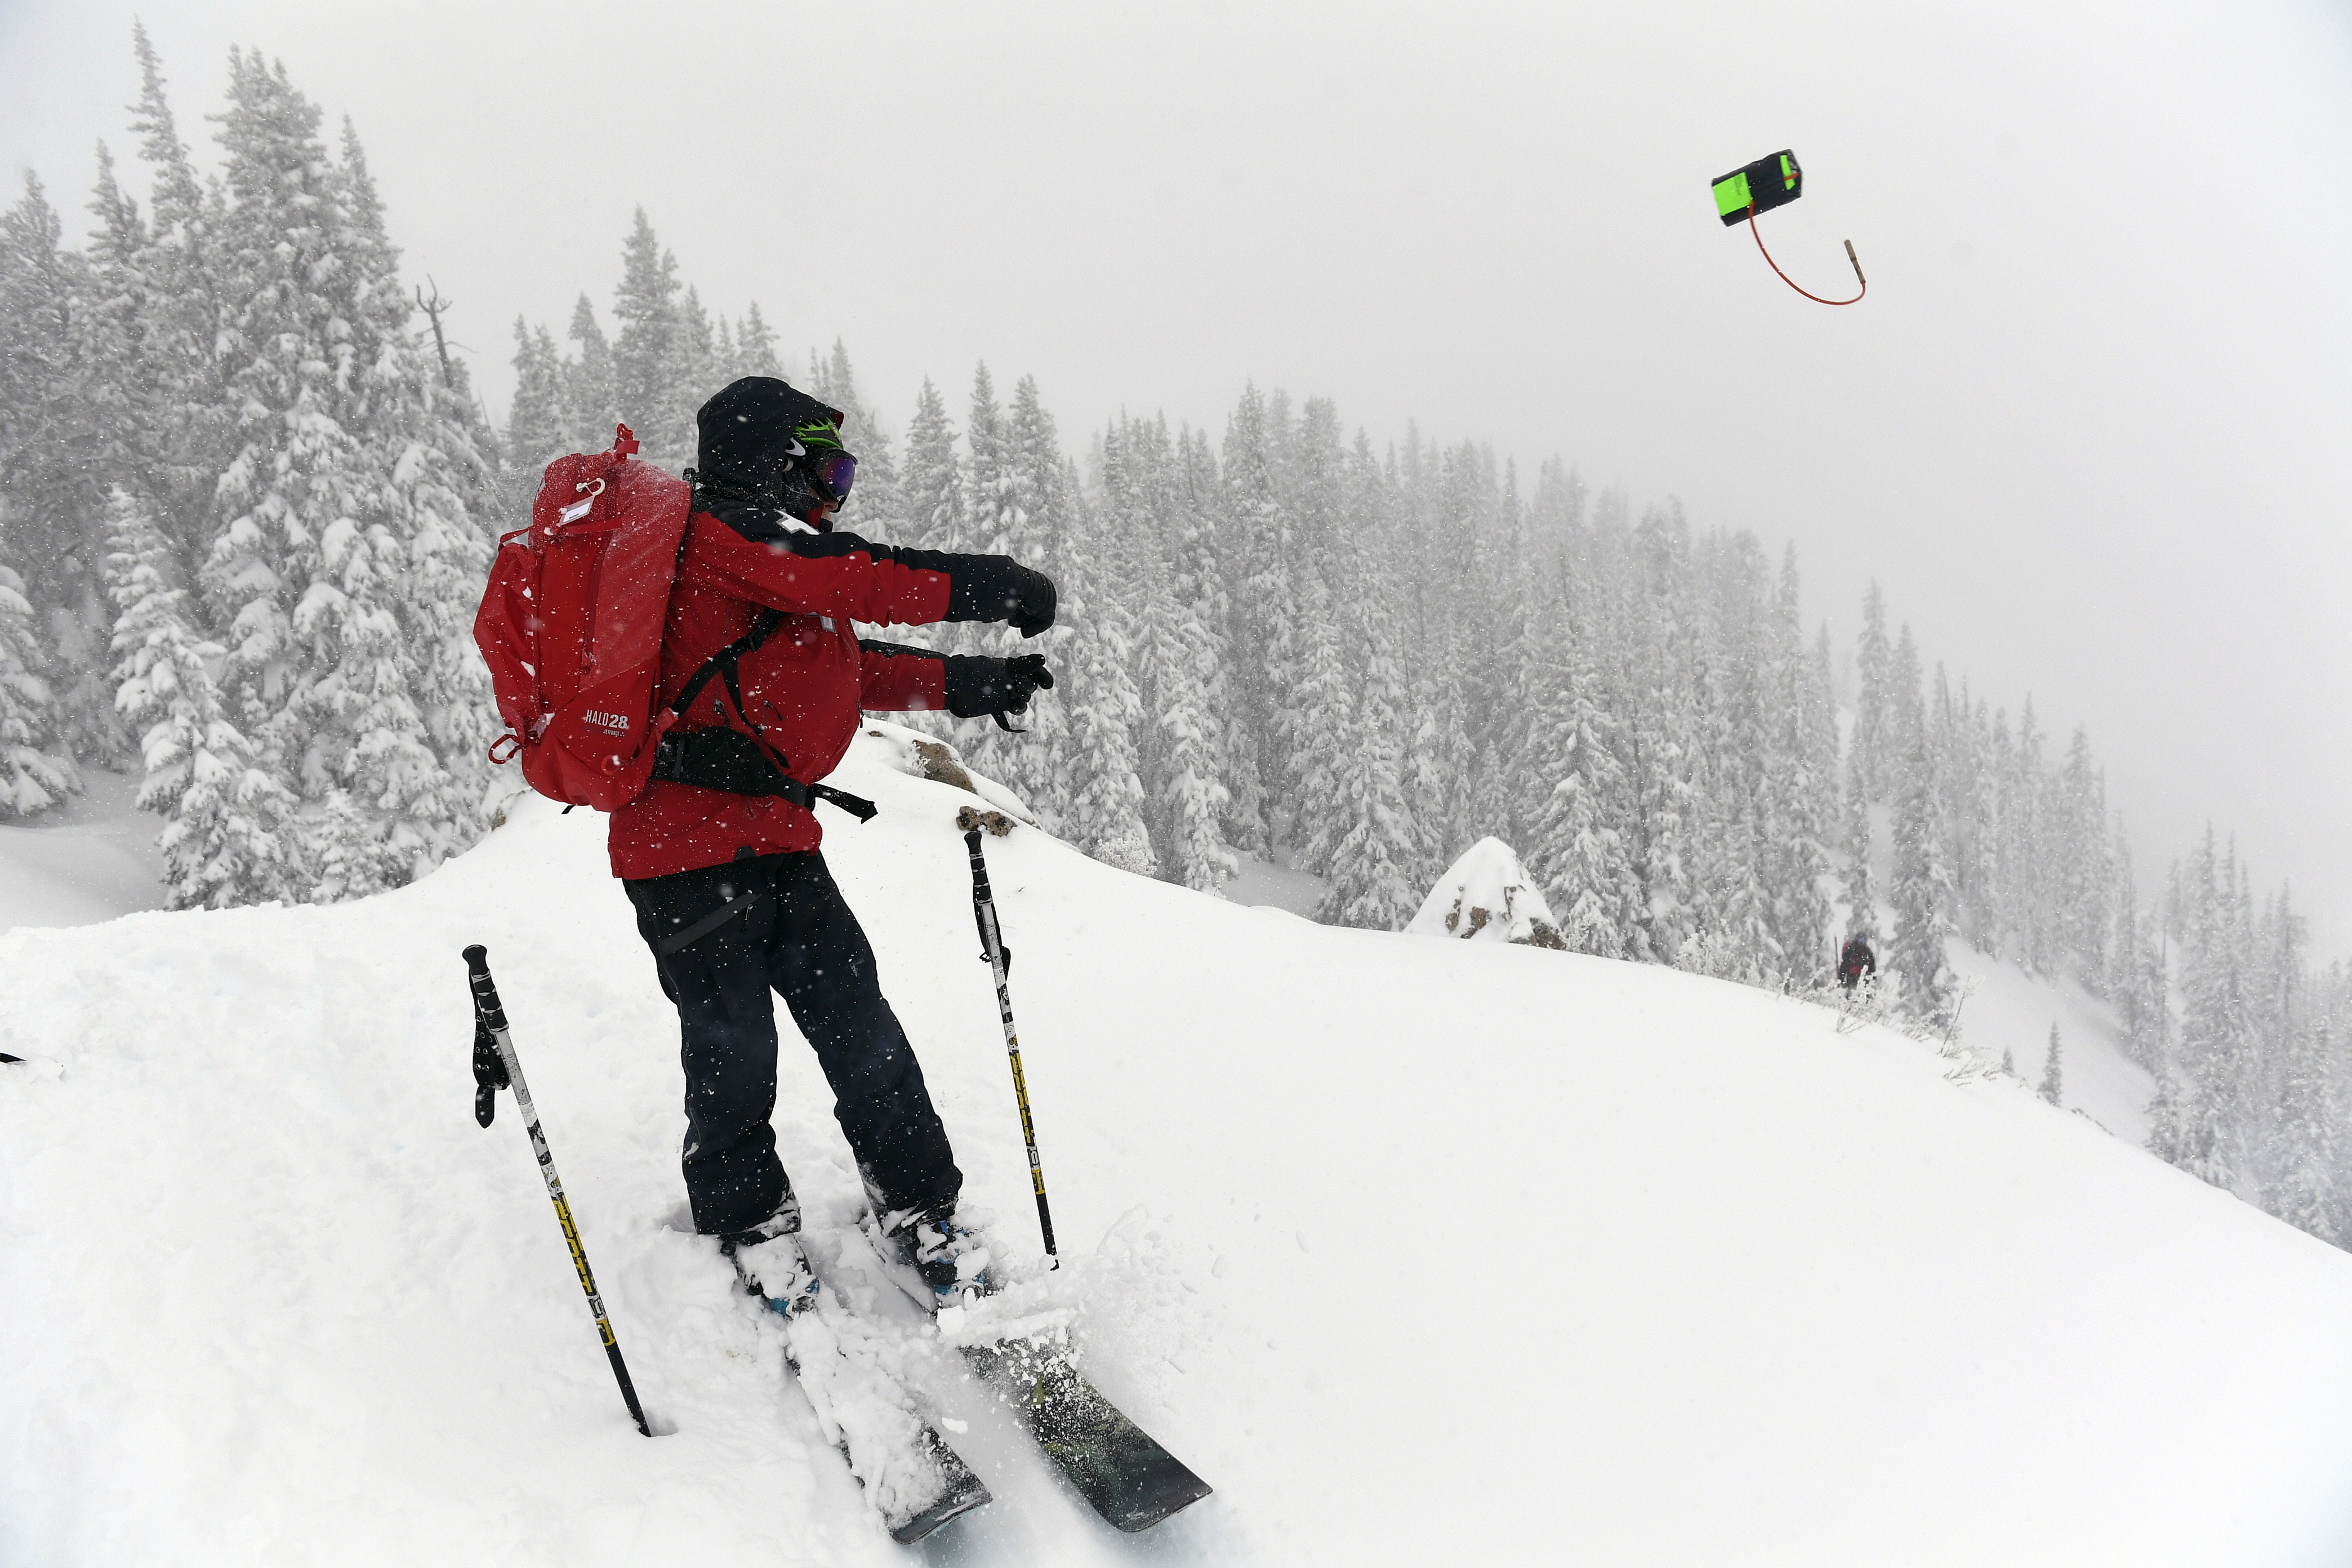 Crested Butte ski patroller Eric Mercer Baumm throws a 2 pound avalanche bomb into the deep powder in the Headwall area of Crested Butte Mountain Resort as he and other patrollers do avalanche mitigation before lifts open on the mountain on January 12, 2017. Crested Butte has been inundated with more than 100 inches of snow in the past 10 days and patrollers take great precaution to keep runs safe before opening them up to the public. More snow is expected in the upcoming days. (credit: Helen H. Richardson/The Denver Post via Getty Images)